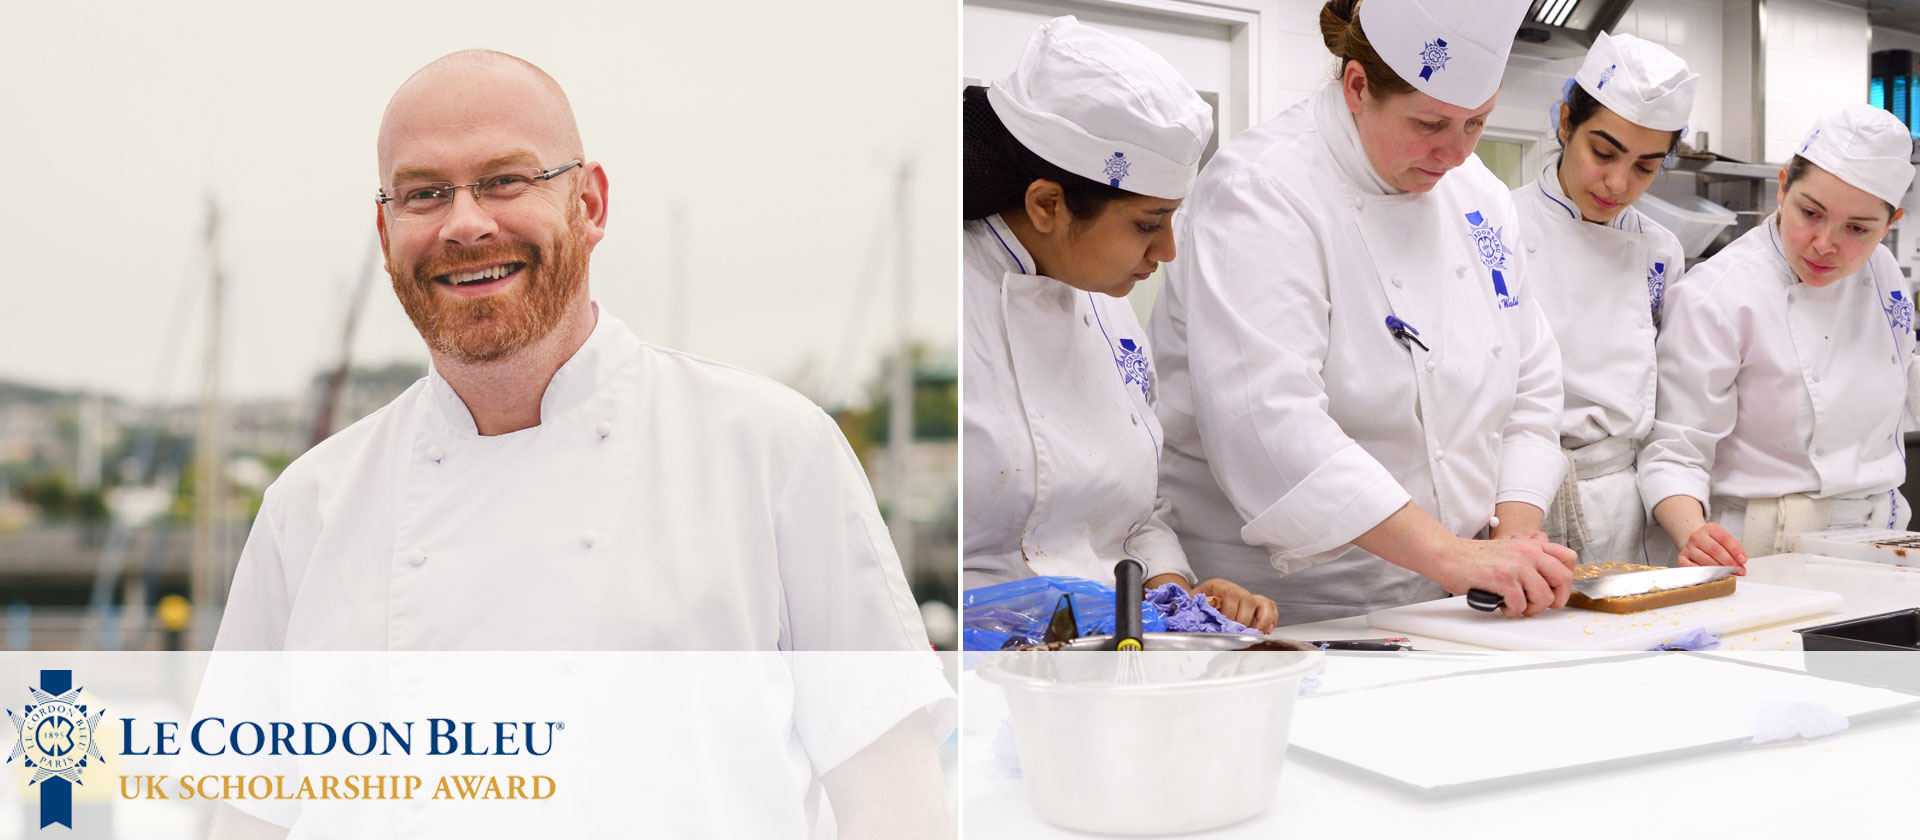 UK Scholarship Event with Simon Hulstone